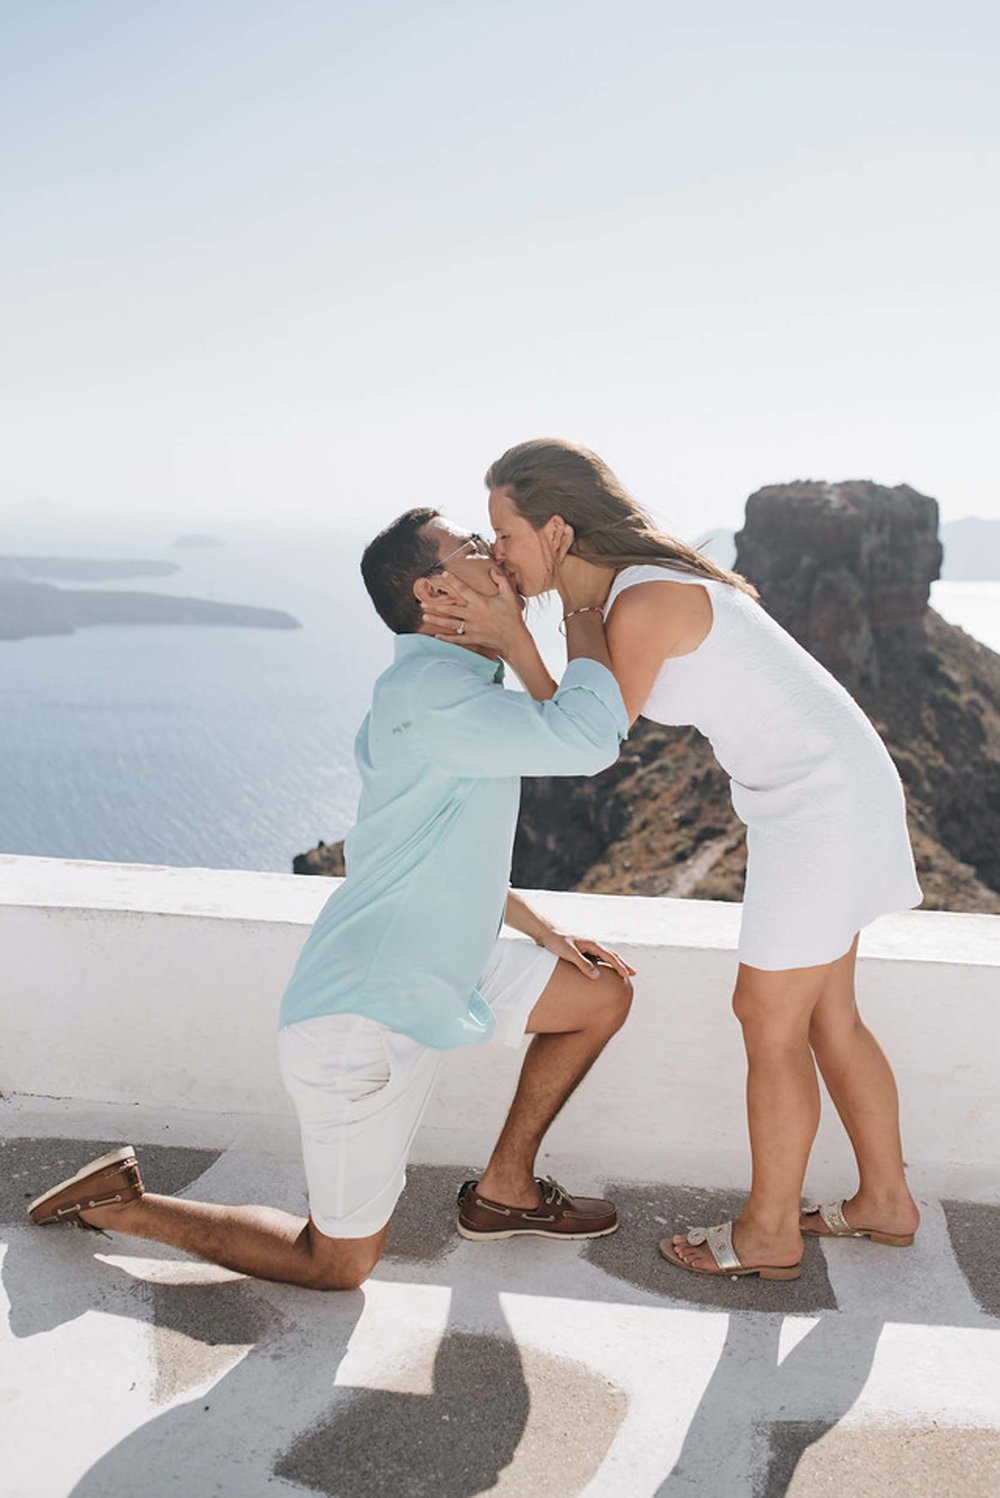 Click to see these dreamy Santorini proposal photos on the Flytographer blog! | Travel + Vacation Photographer | Family Vacations | Engagement Proposals | Honeymoons | Anniversary Gifts | Bachelorette Ideas | Solo Traveller Tips |  Flytographer captures your travel memories - everything from surprise proposals, honeymoons, family vacations, and more. So often you are missing out of your own photos! Flytographer solves that problem for you. Our photographers also act as informal tour guides and provide fun local tips to our customers, showing them an area of a city they may not have explored without Flytographer. Book your photographer at 1.888.211.7178 or visit our website at www.flytographer.com/book